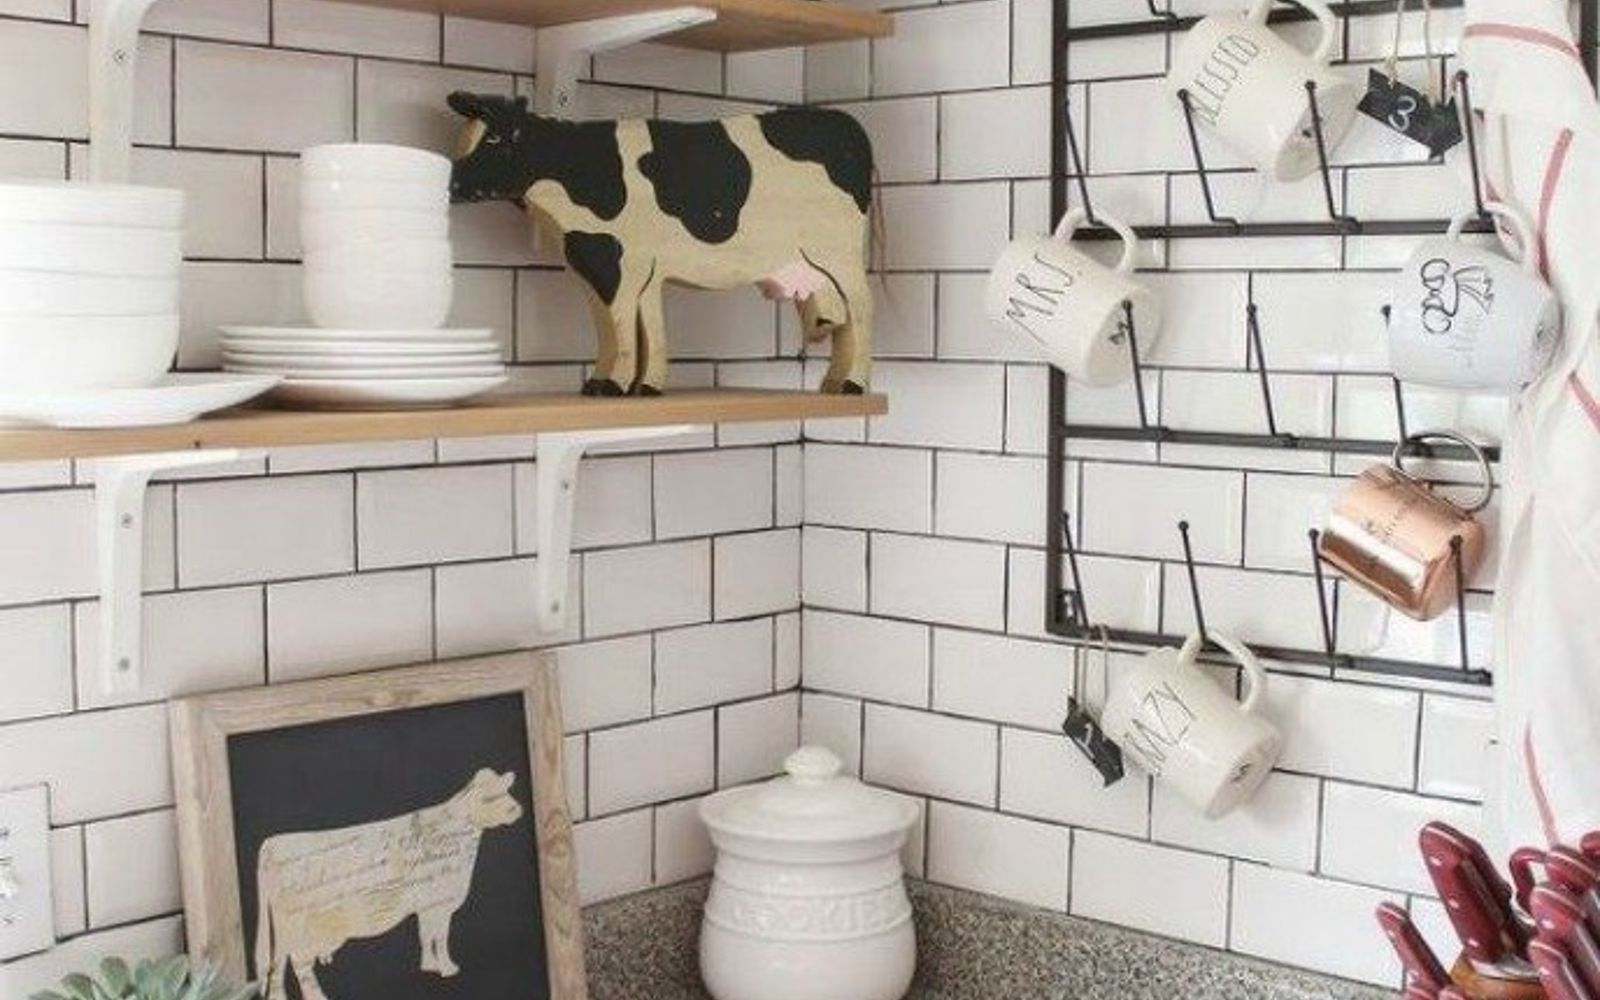 s 15 clever ways to add more kitchen storage space with open shelves, kitchen design, shelving ideas, storage ideas, Turn it into a coffee corner